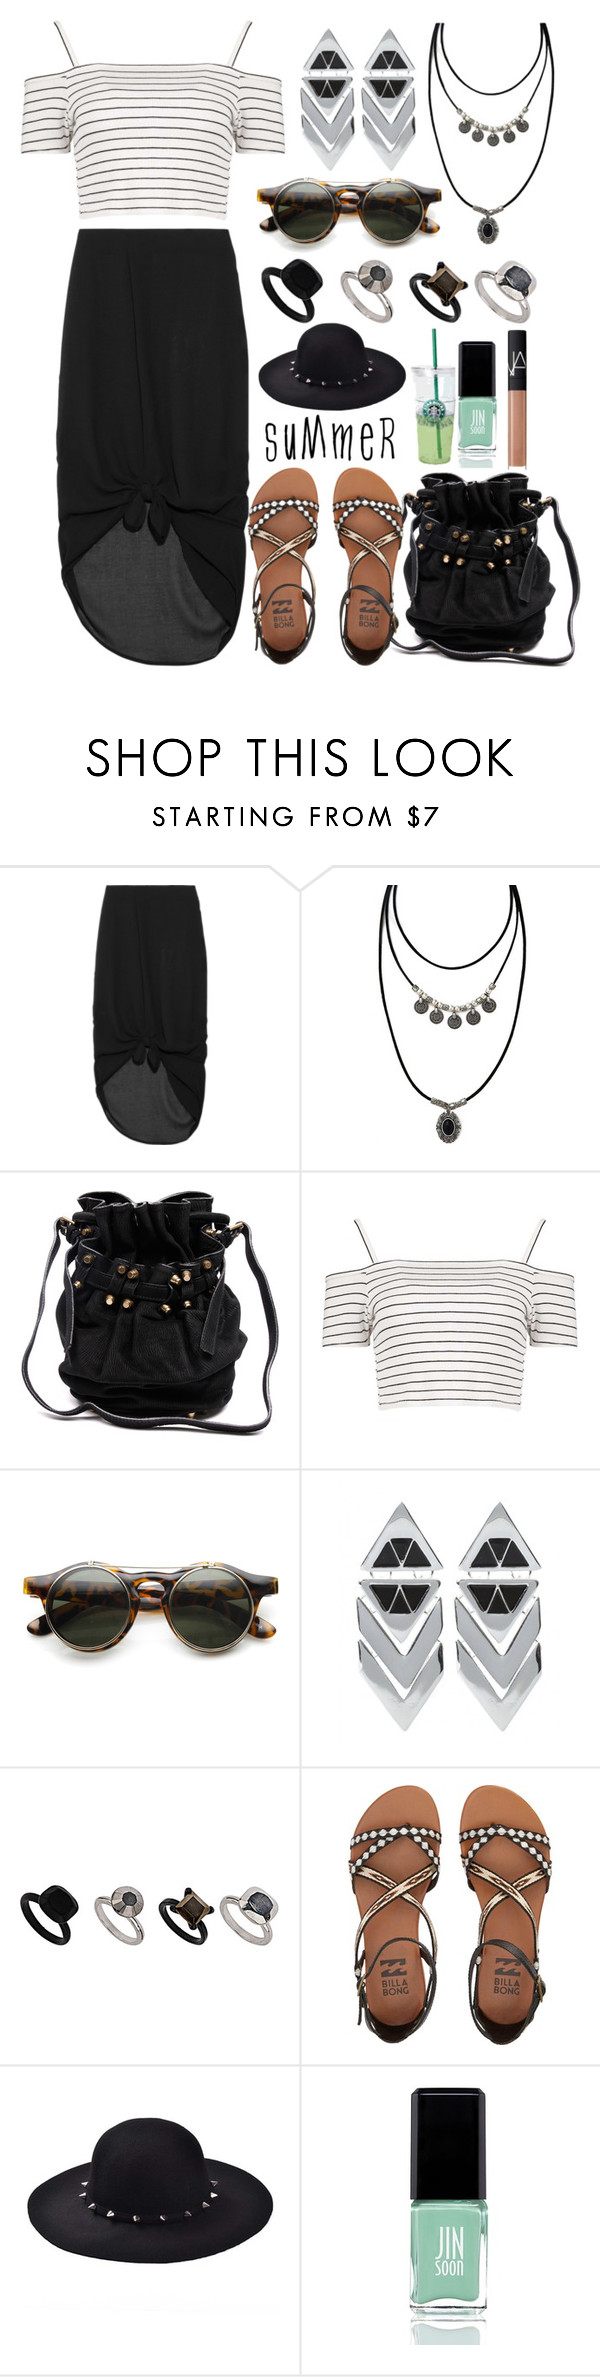 """Summer"" by may-calista ❤ liked on Polyvore featuring Minimarket, Forever 21, Alexander Wang, Boohoo, Topshop, Billabong, JINsoon, NARS Cosmetics, Summer and blackandwhite"